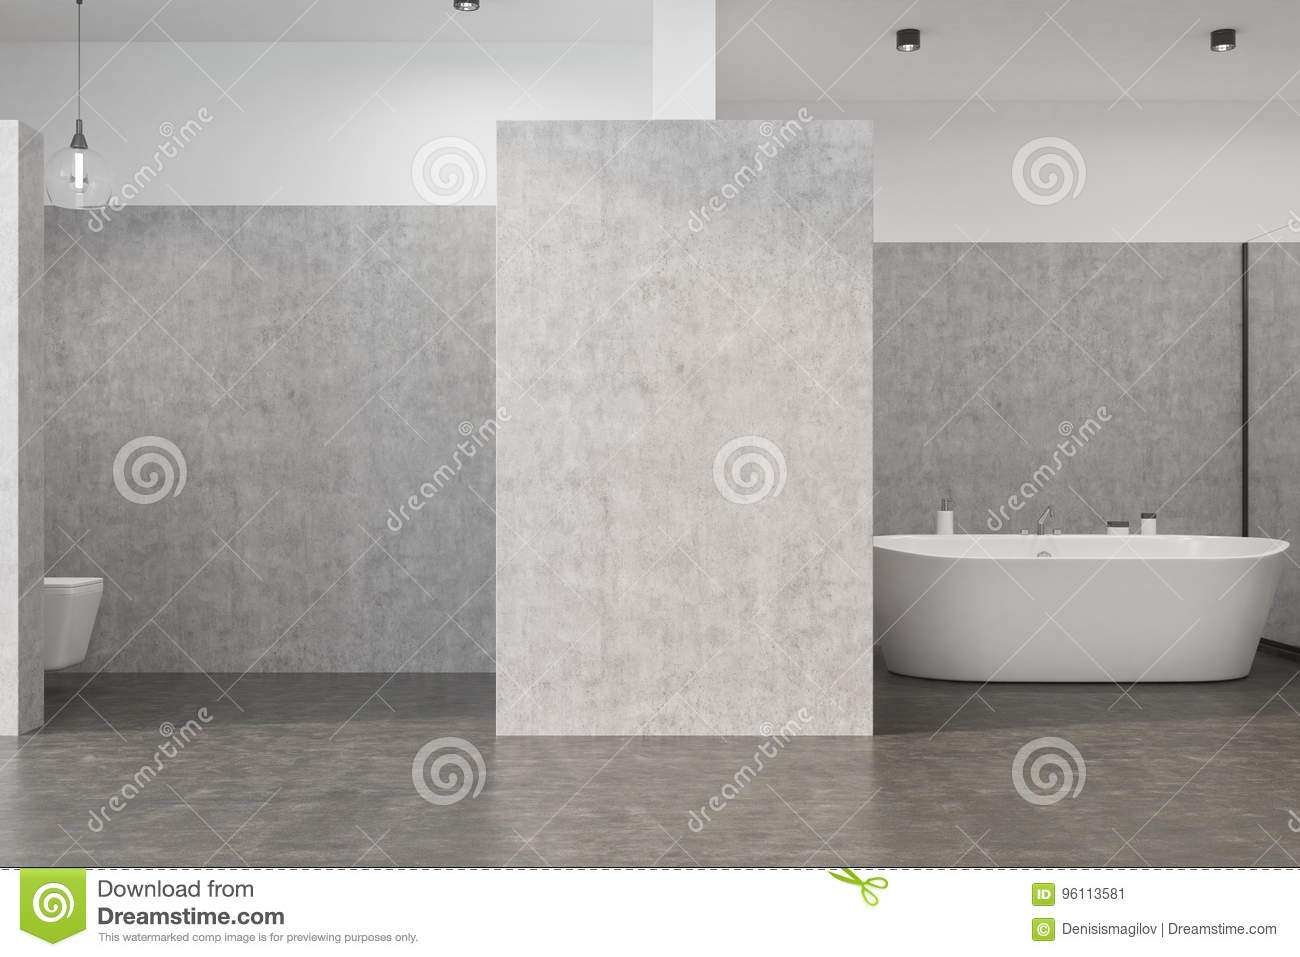 Gray bathroom interior with a concrete floor, a white tub, a toilet and an original lamp. 3d rendering mock up